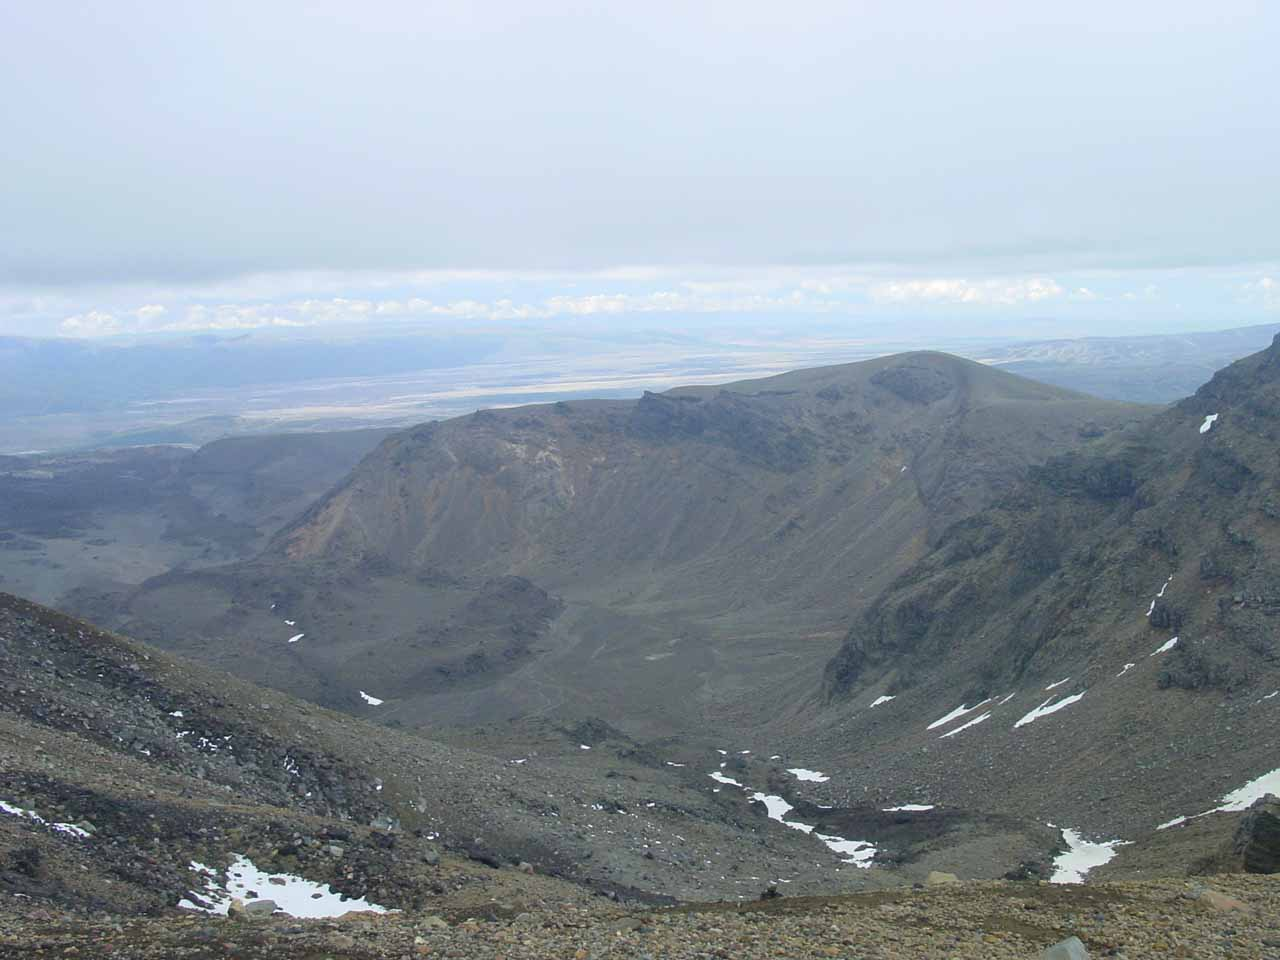 More mindblowing scenery while on the Tongariro Crossing's upper elevations